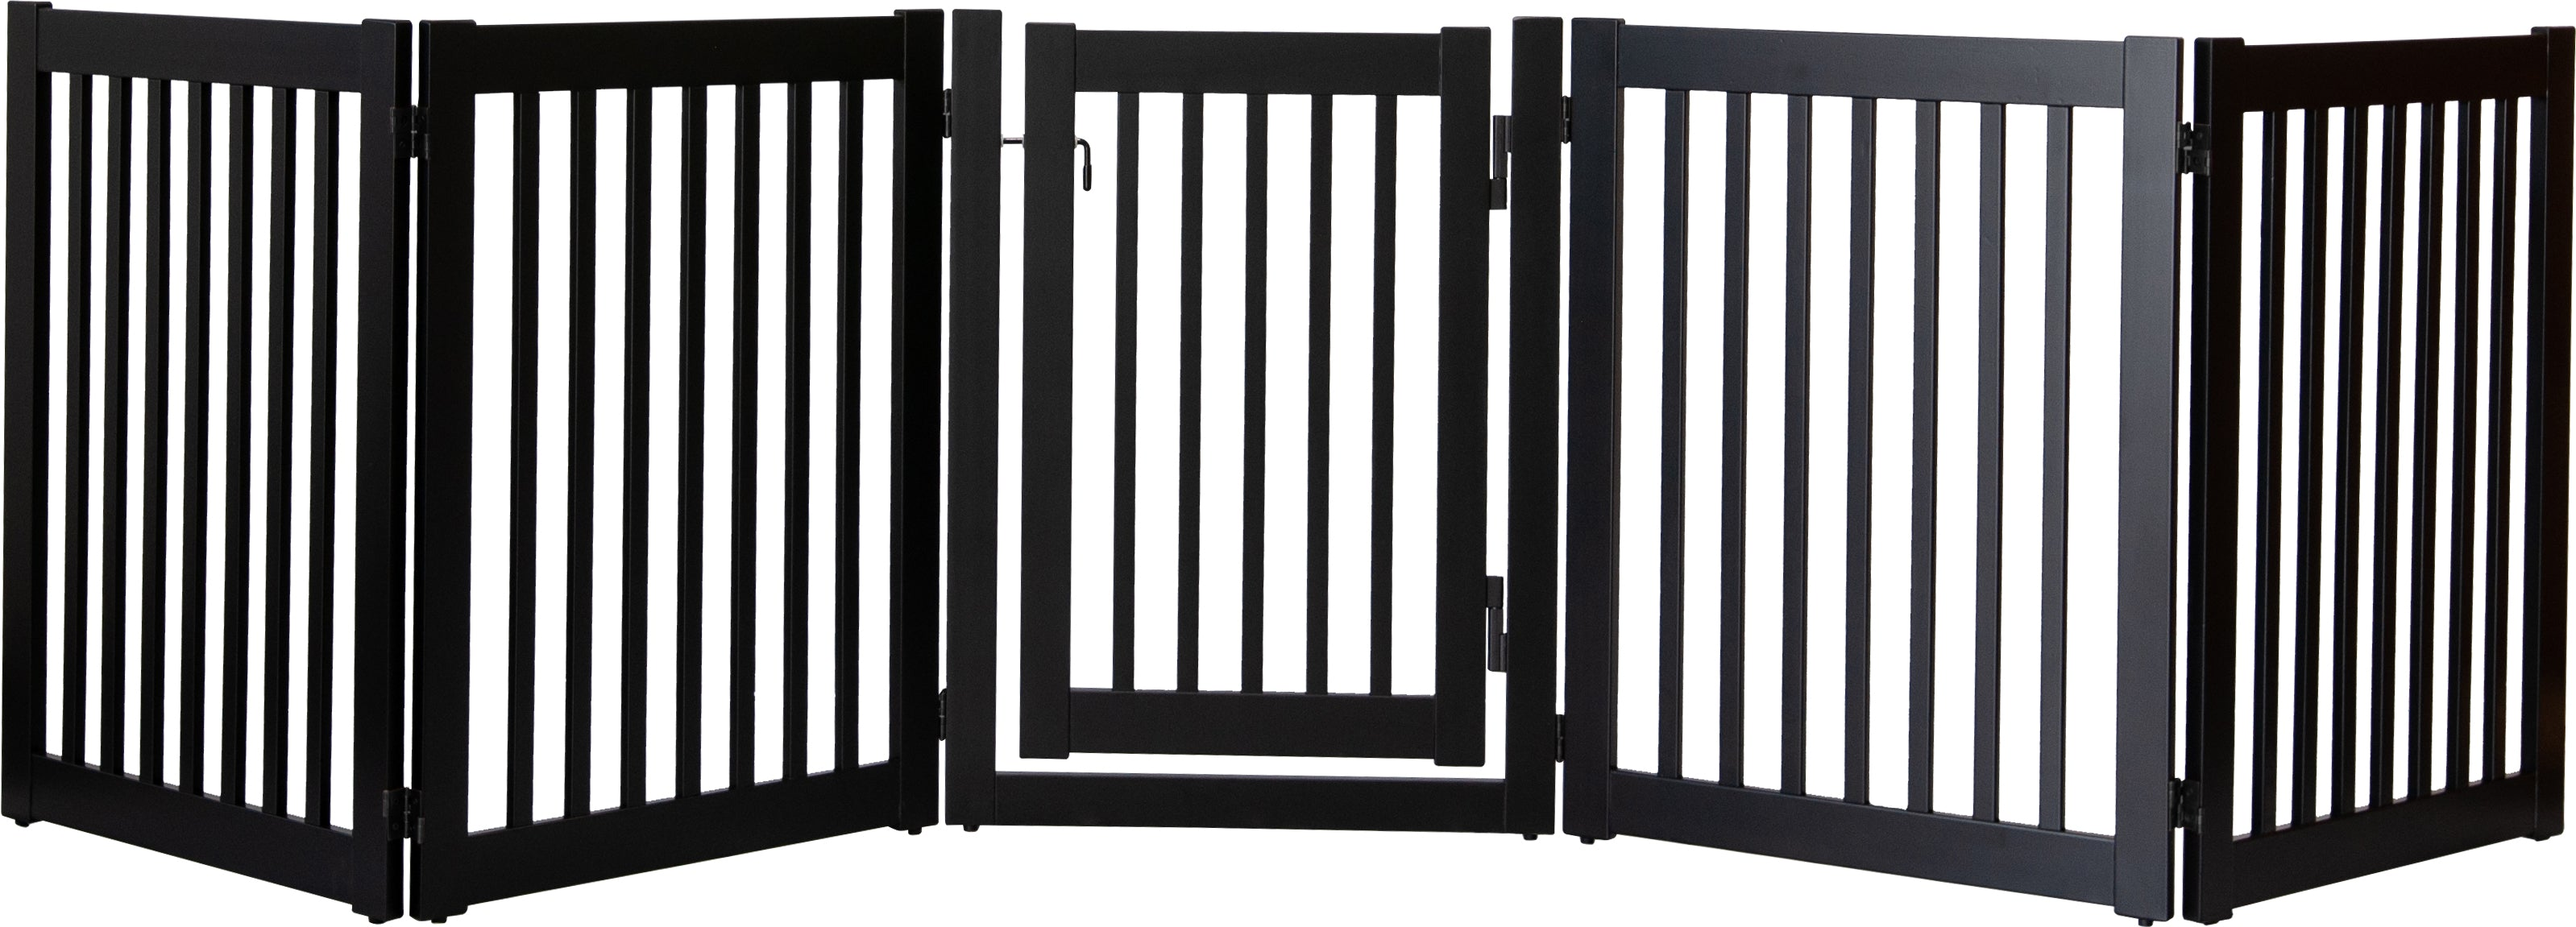 Amish Handcrafted 5 Panel Accordion Pet Gate w/Door Black